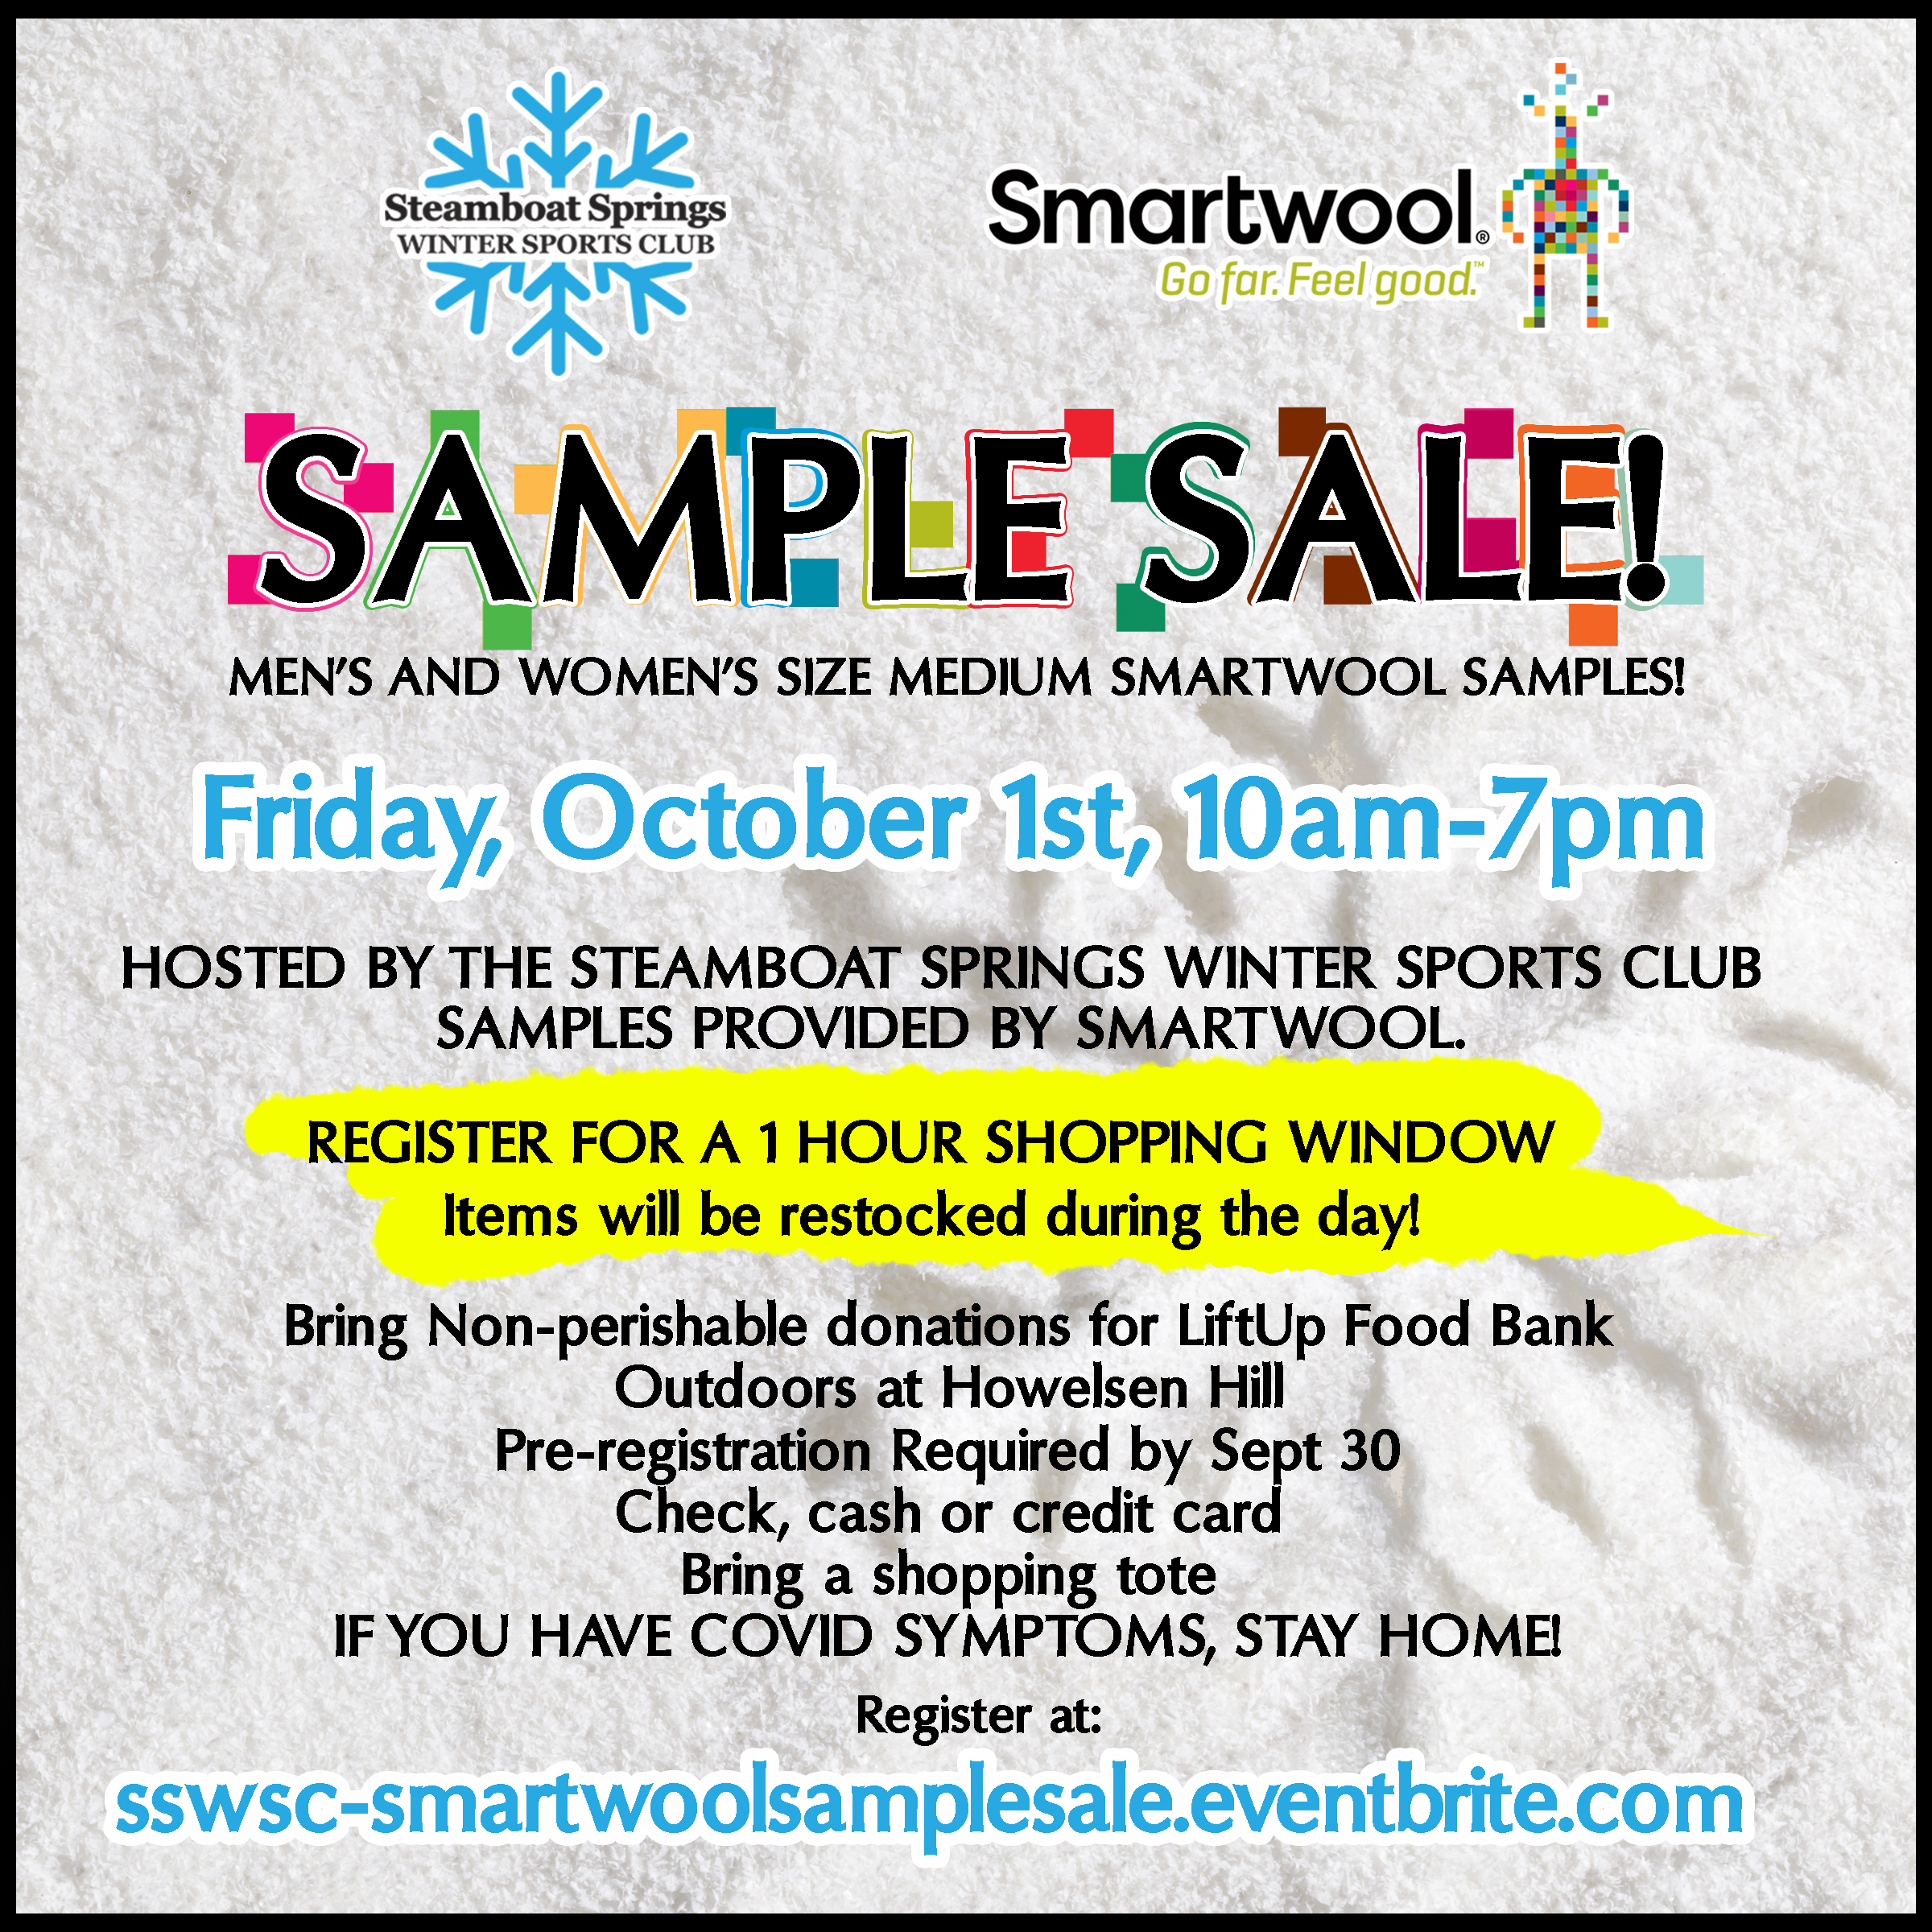 Smartwool Sample Sale hosted by SSWSC